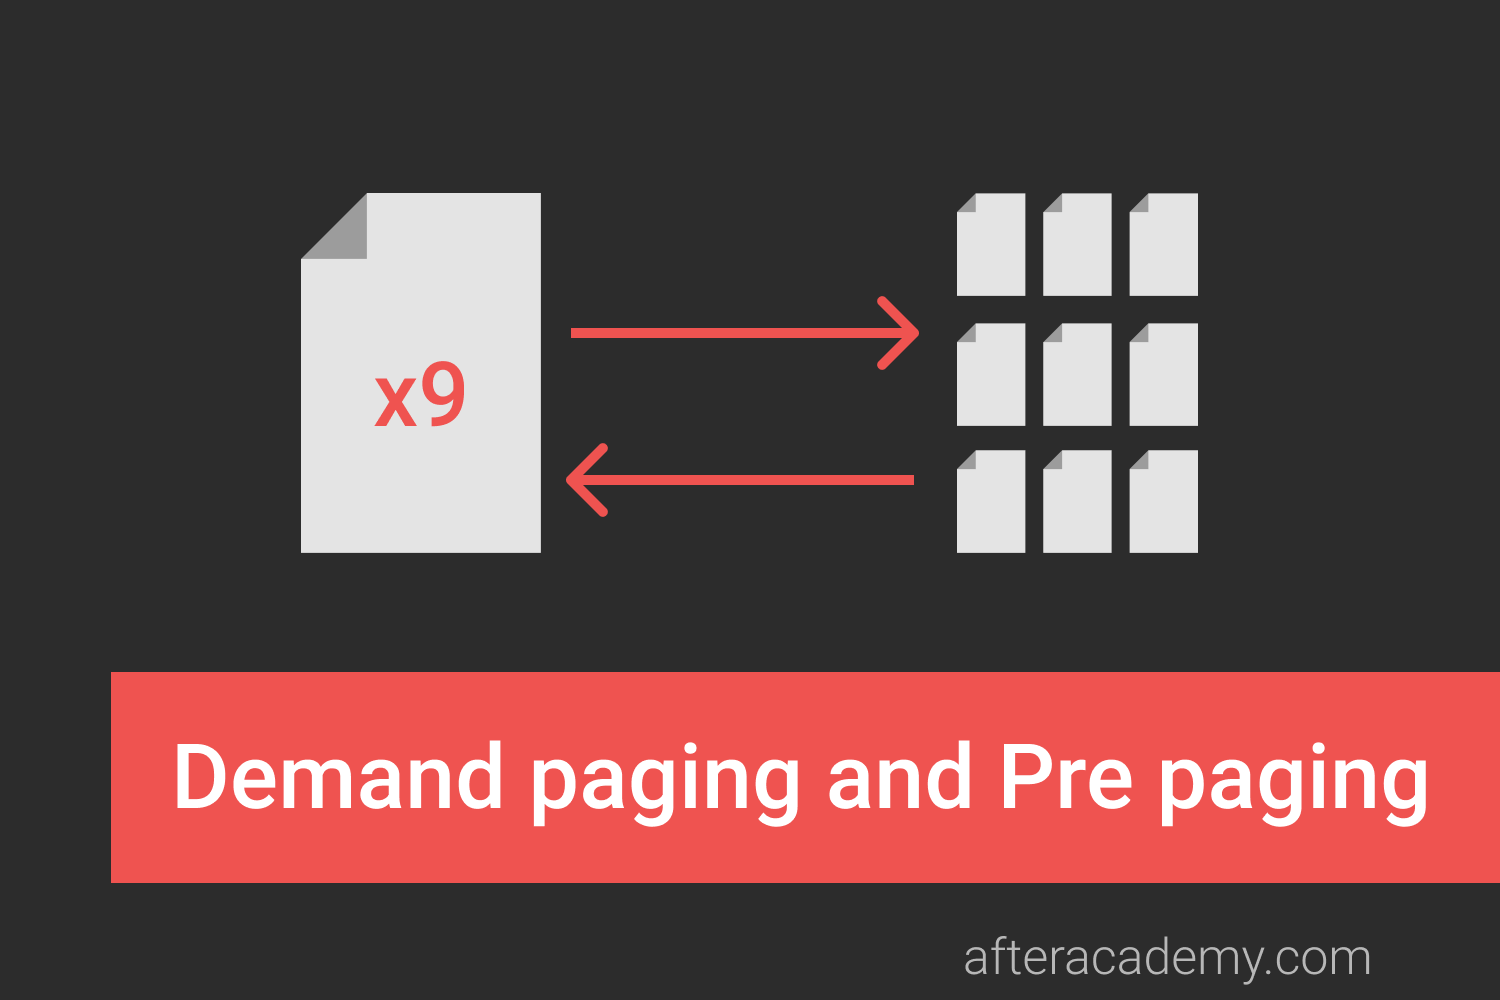 What are demand-paging and pre-paging?